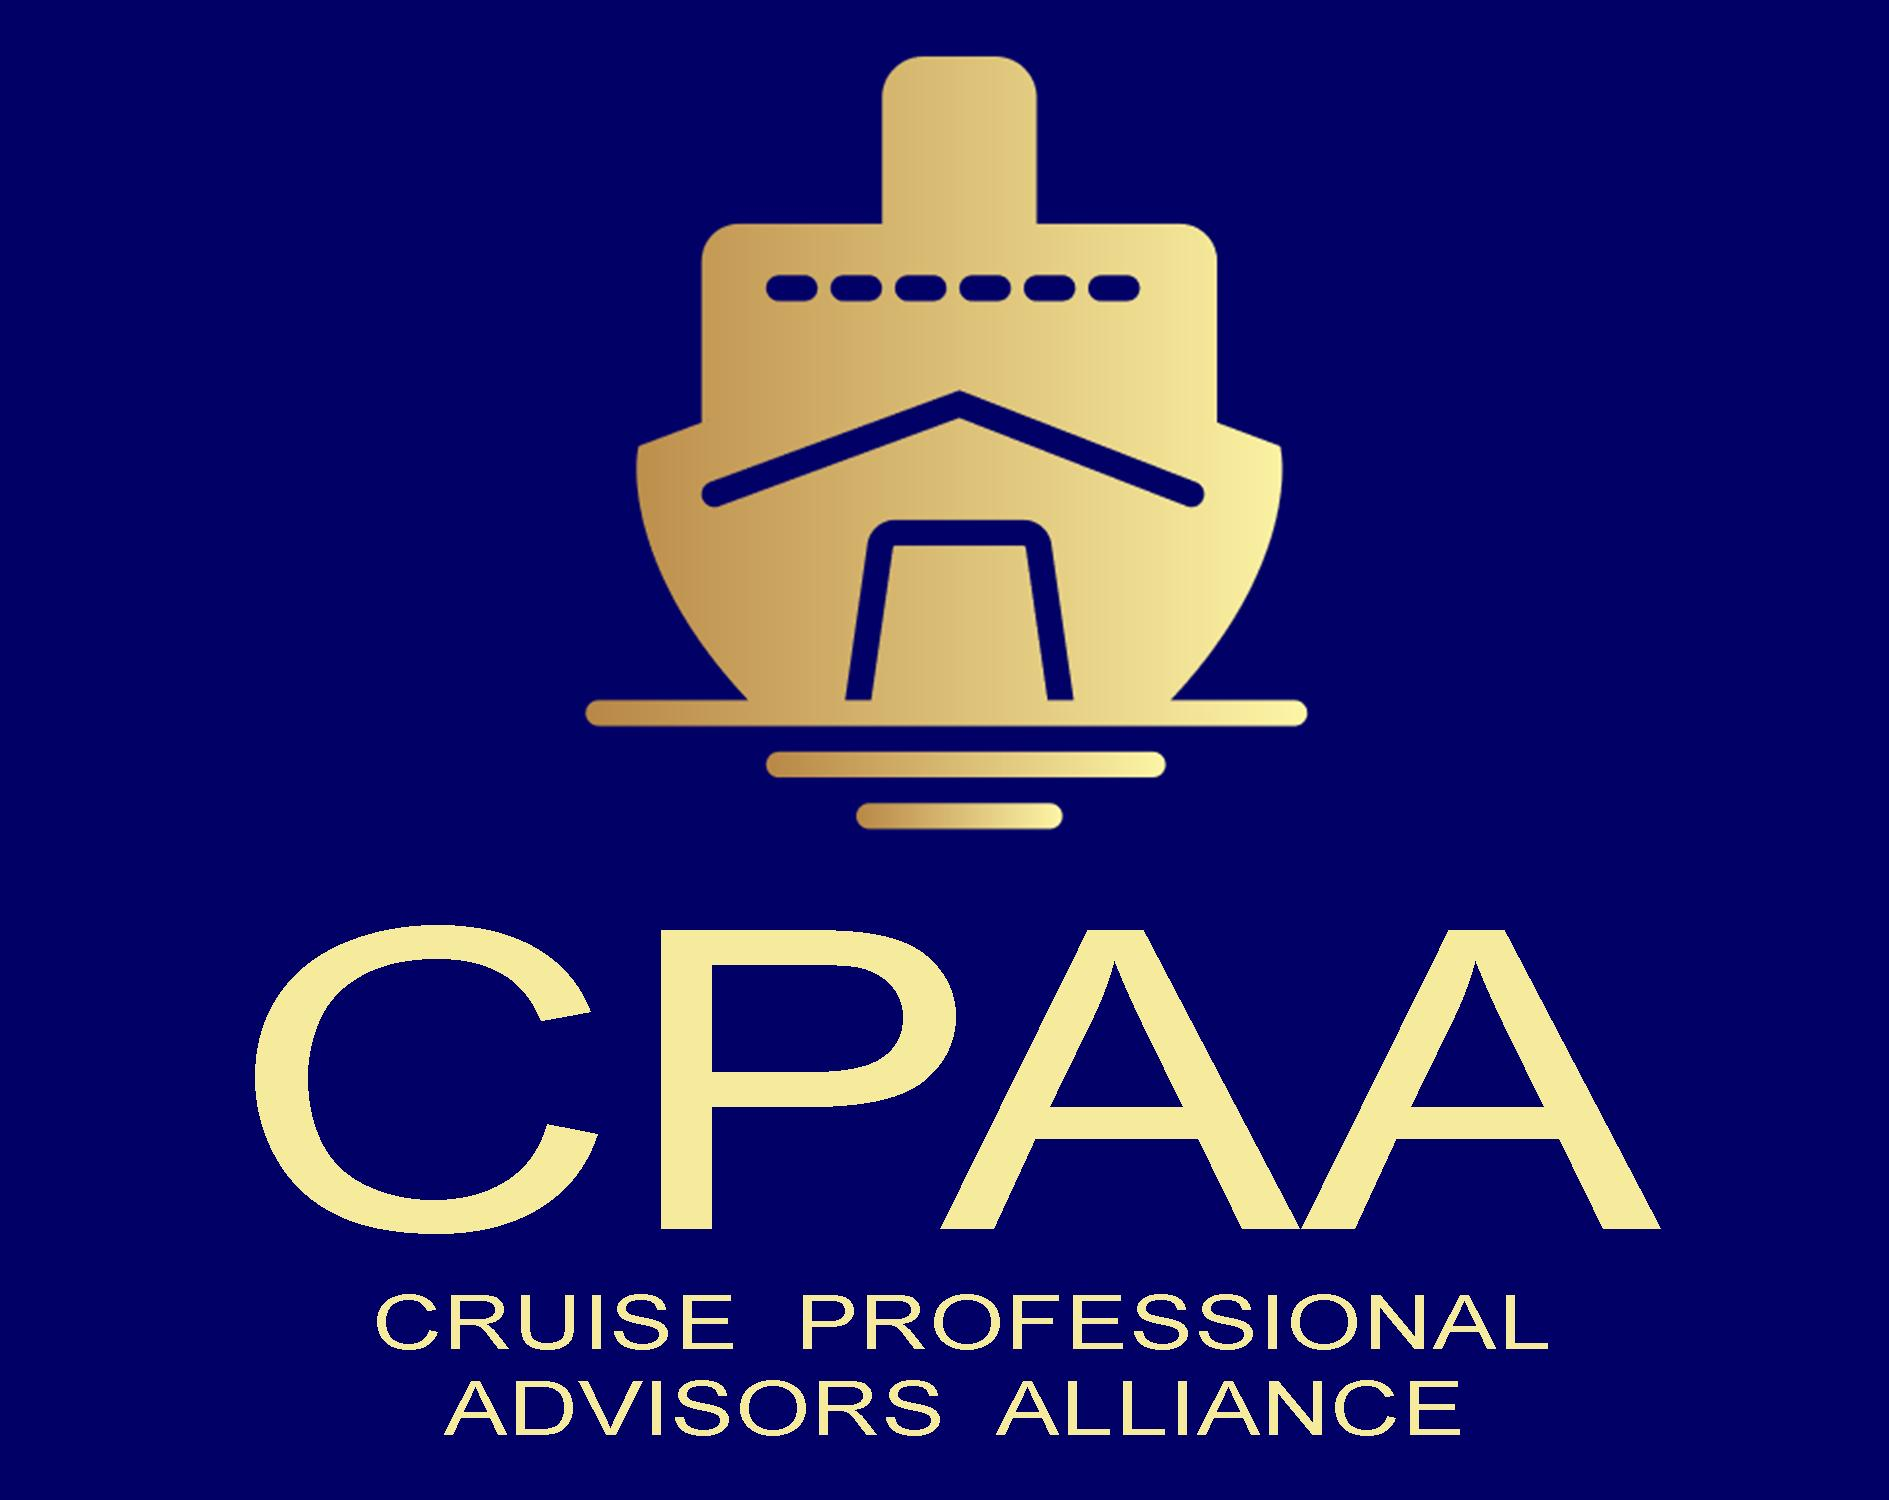 Cruise Professional Advisors Alliance